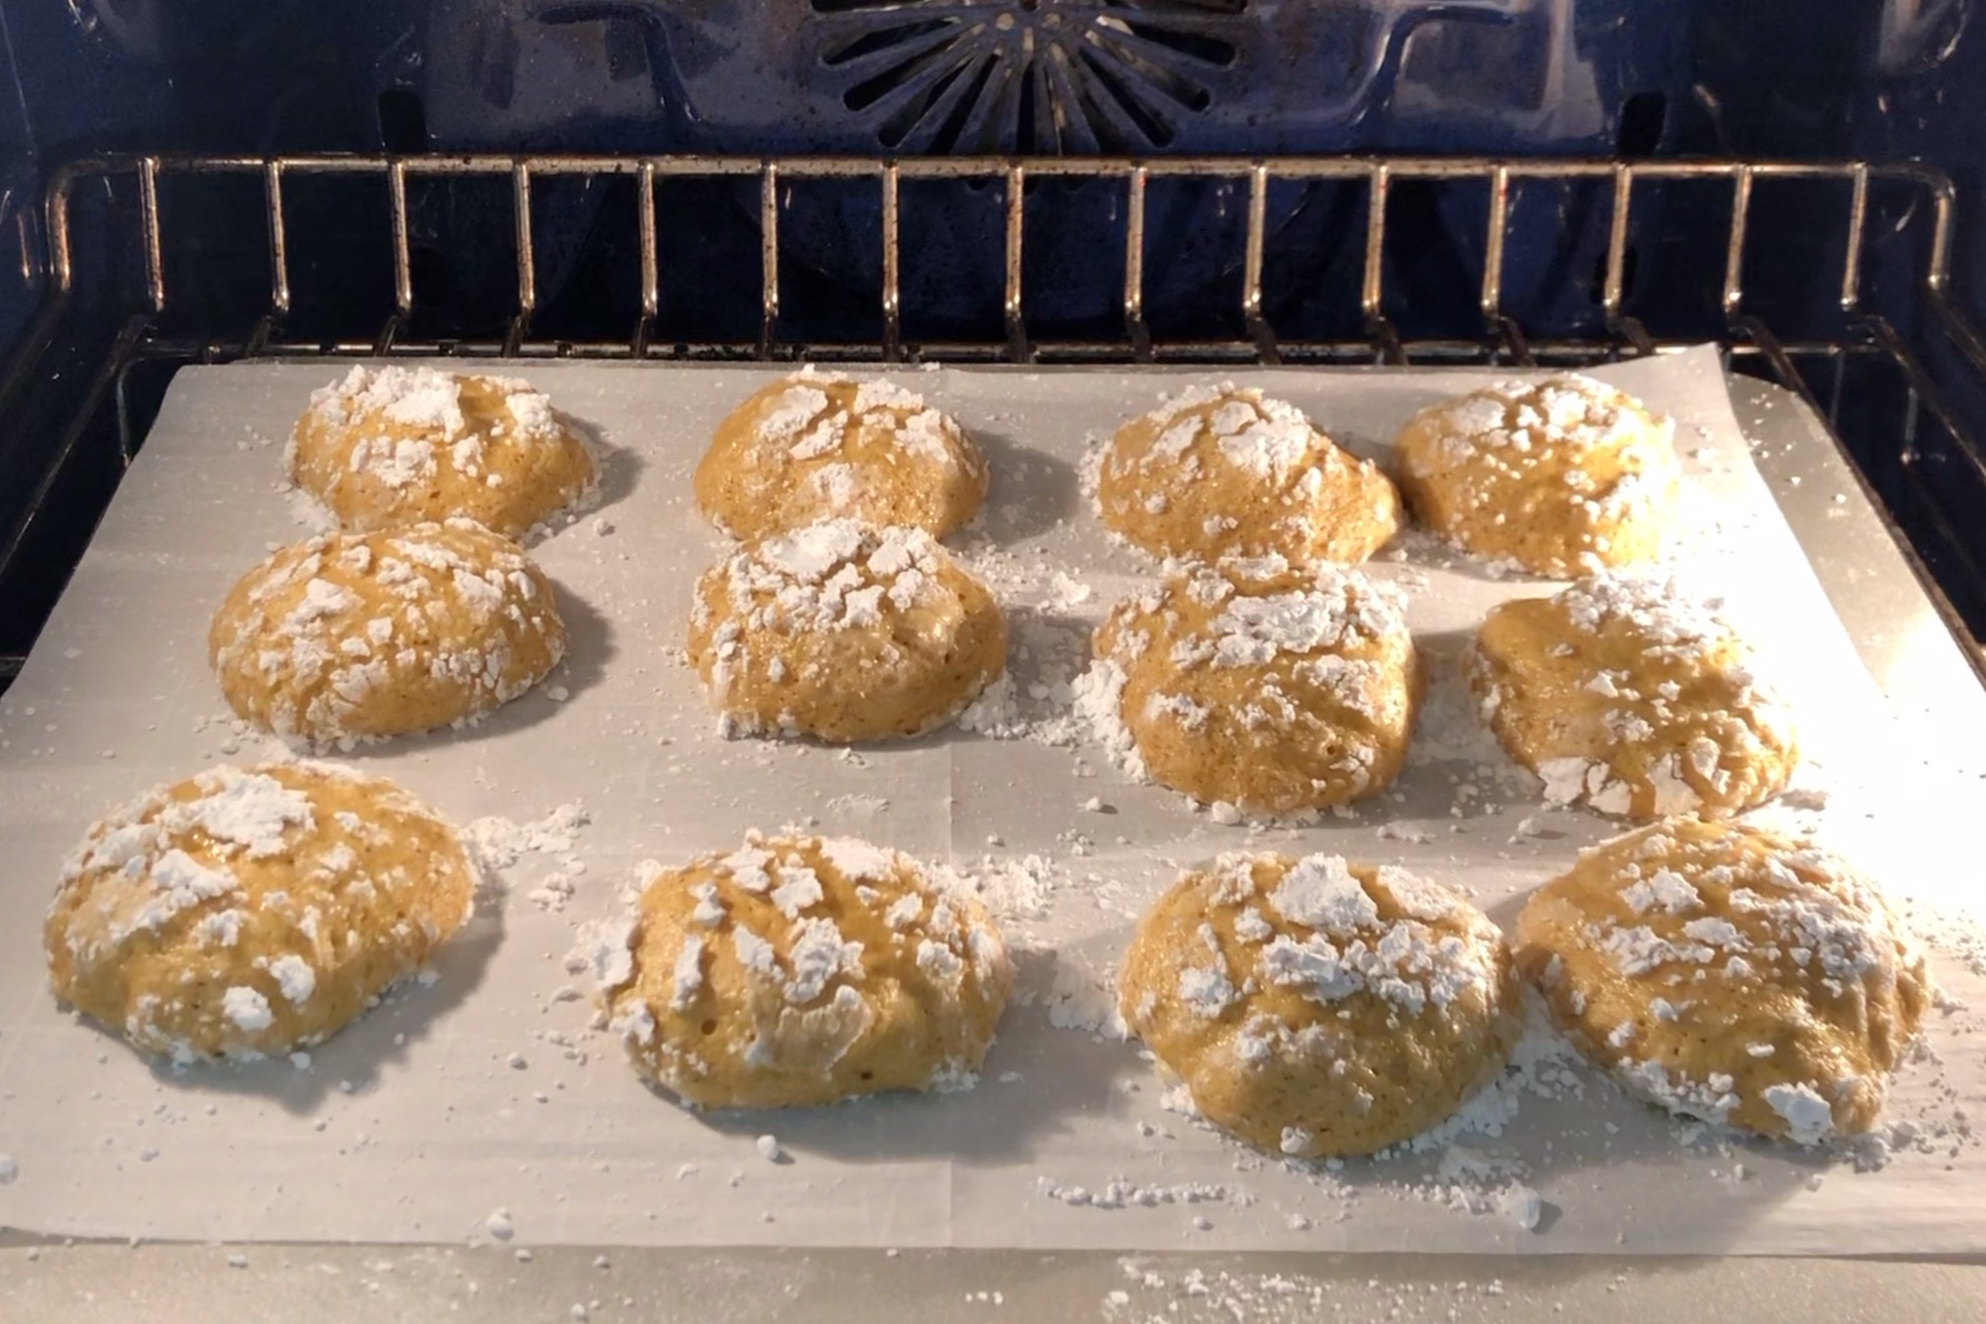 12. Bake cookies for 15 minutes. Cookies should look cracked and puffy. -